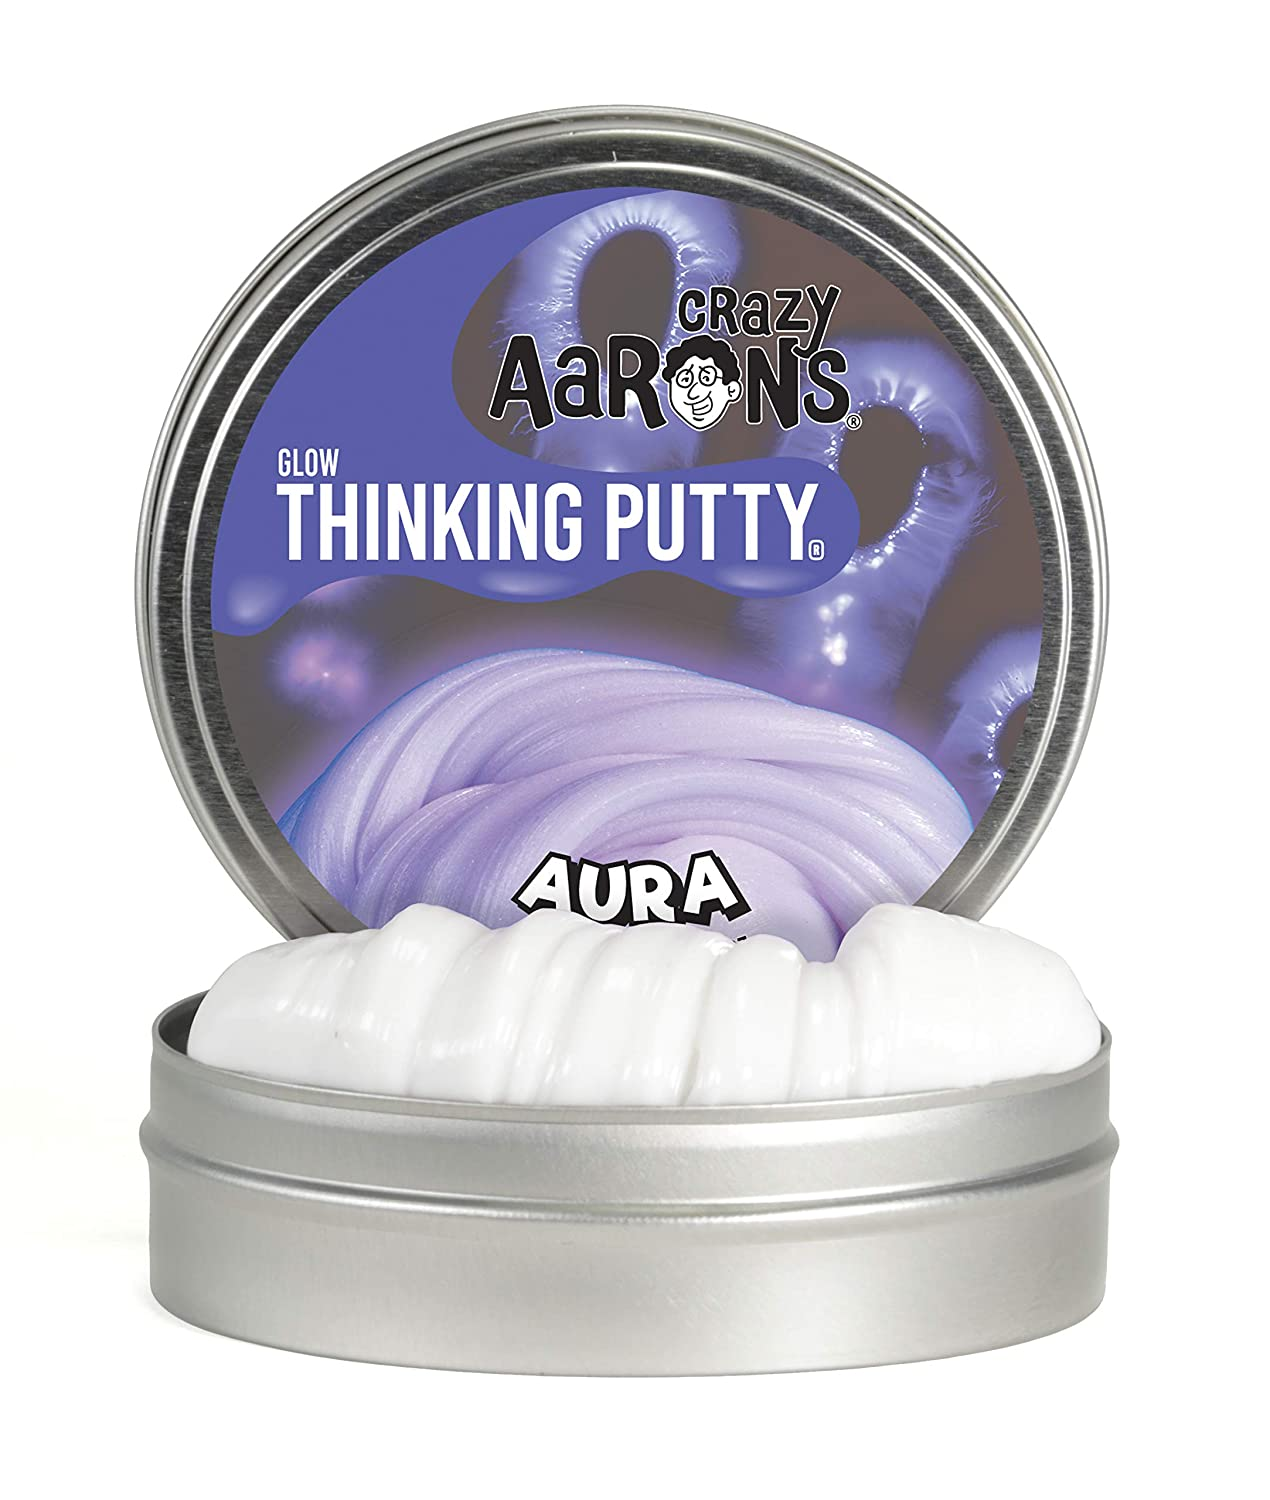 Includes 4 Aura Glow Crazy Aarons Thinking Putty 3 Tin Value Pack 2 Spring Showers Sparkle and Spring Showers Sparkle Putties